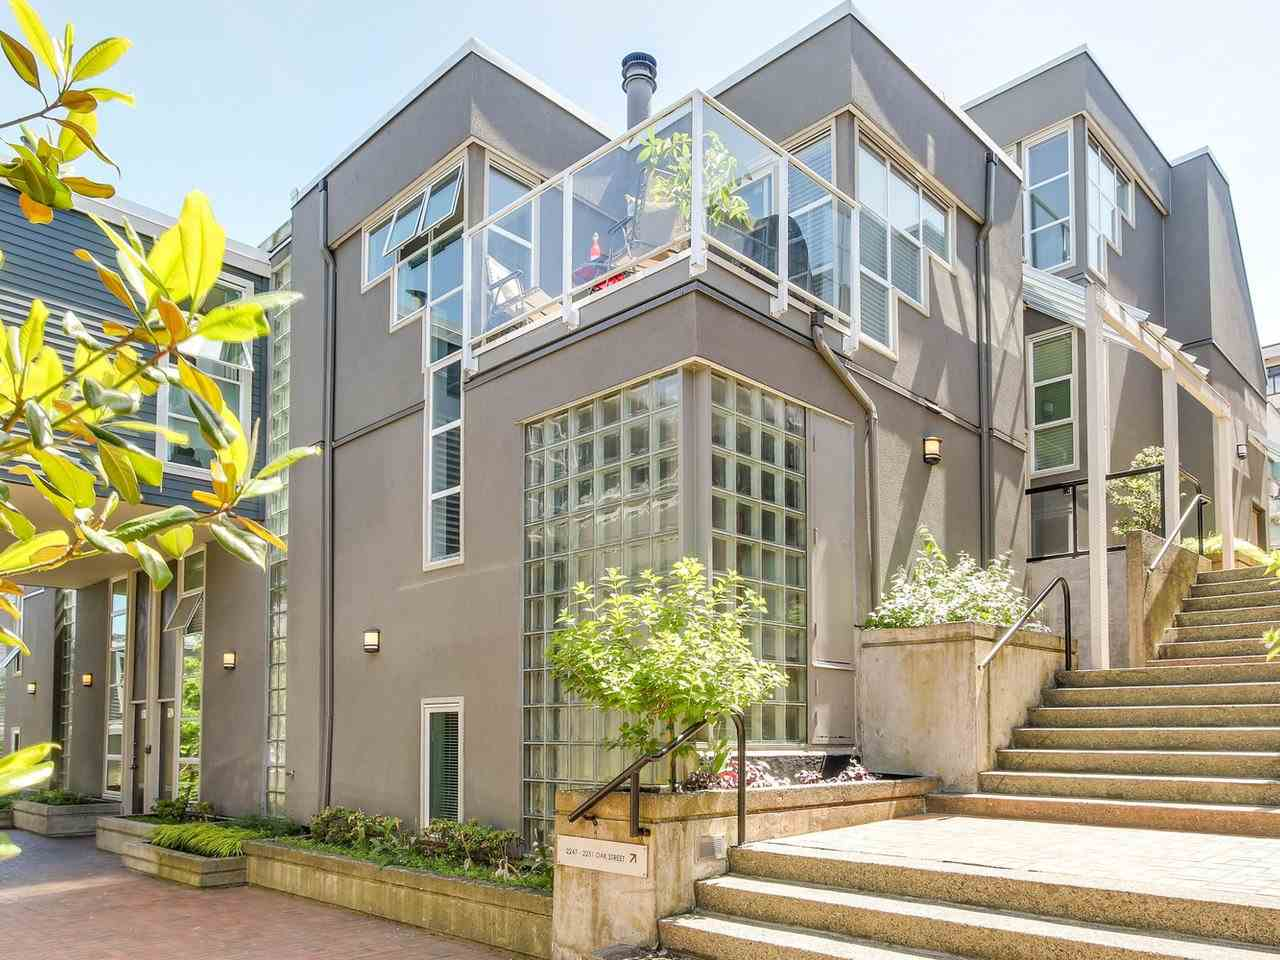 "Main Photo: 2247 OAK Street in Vancouver: Fairview VW Townhouse for sale in ""The Sixth Estates"" (Vancouver West)  : MLS(r) # R2175723"